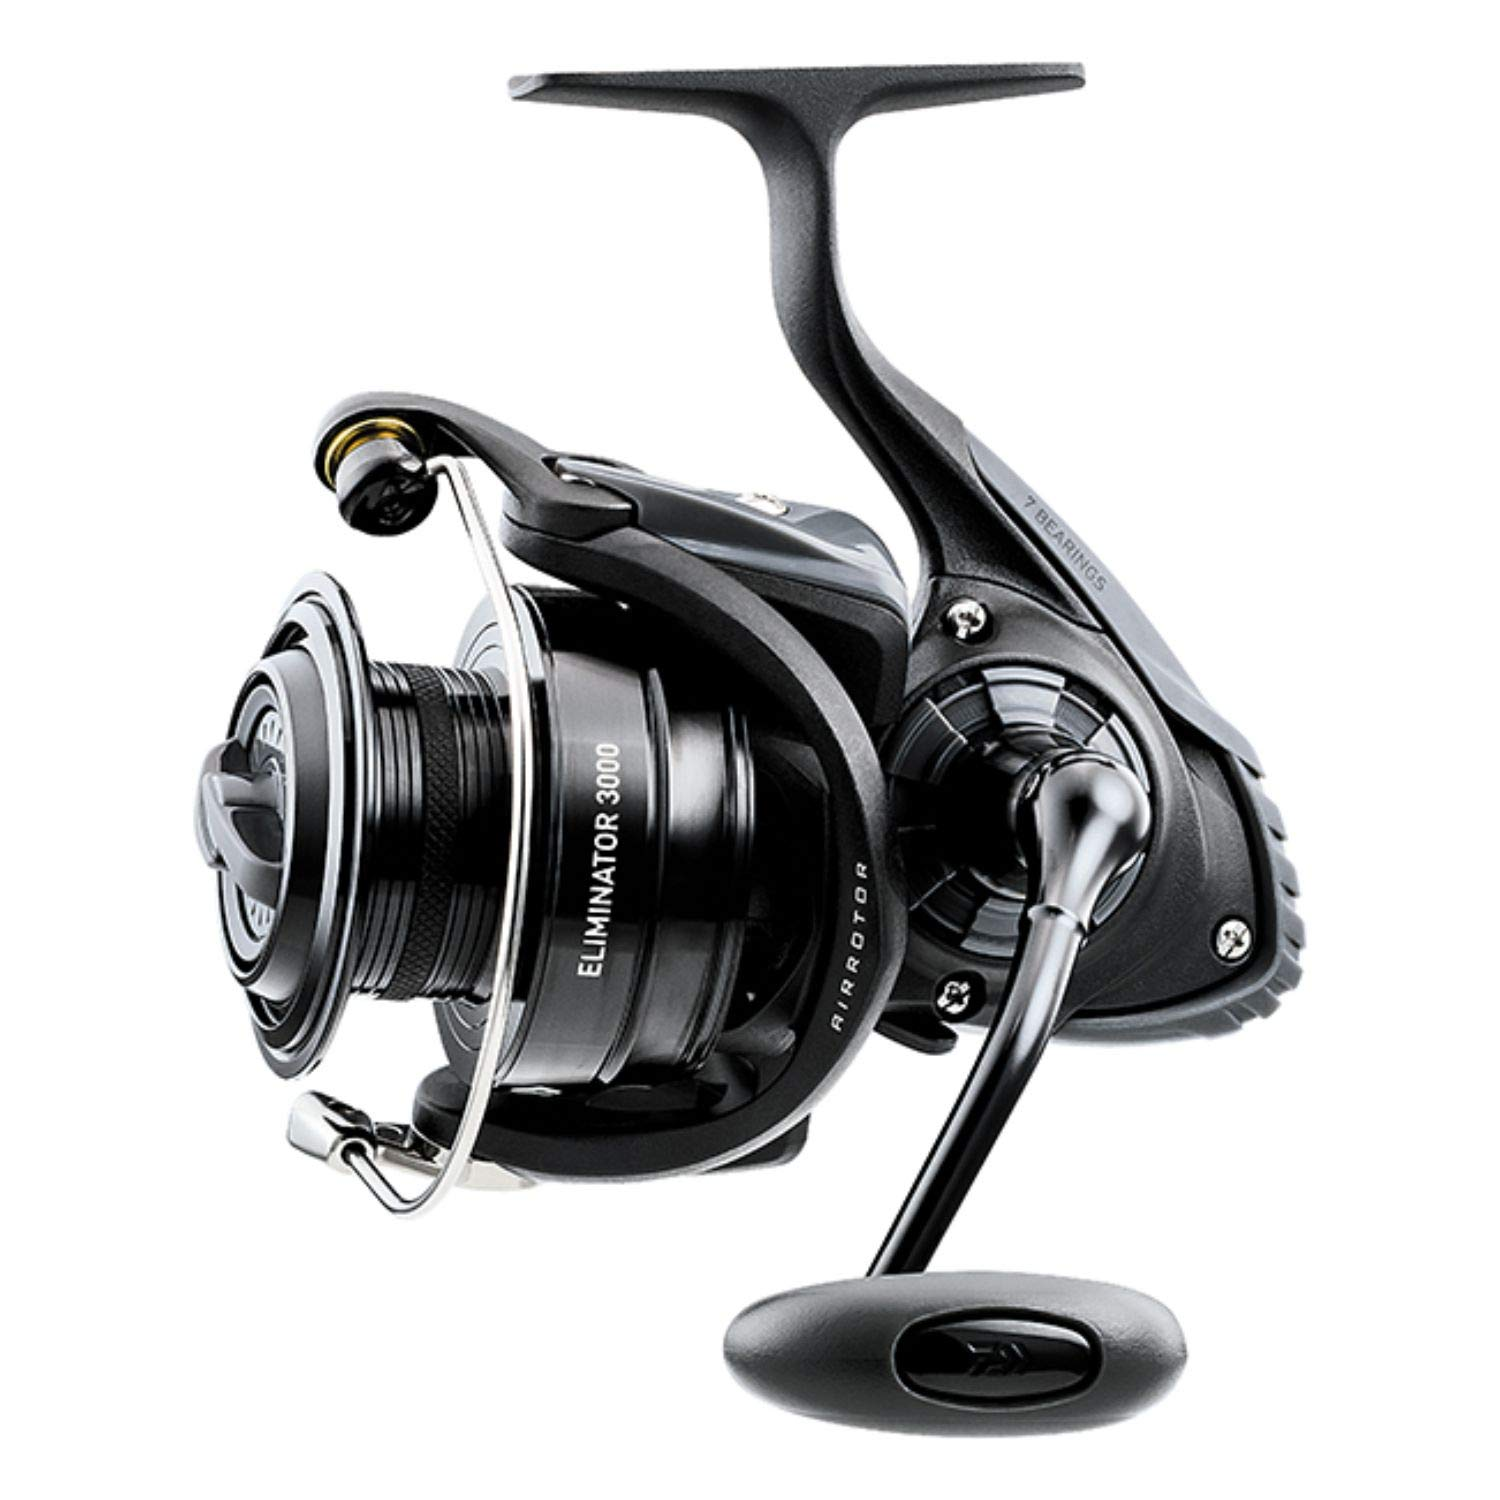 Daiwa Eliminator Spinning Fishing Reel